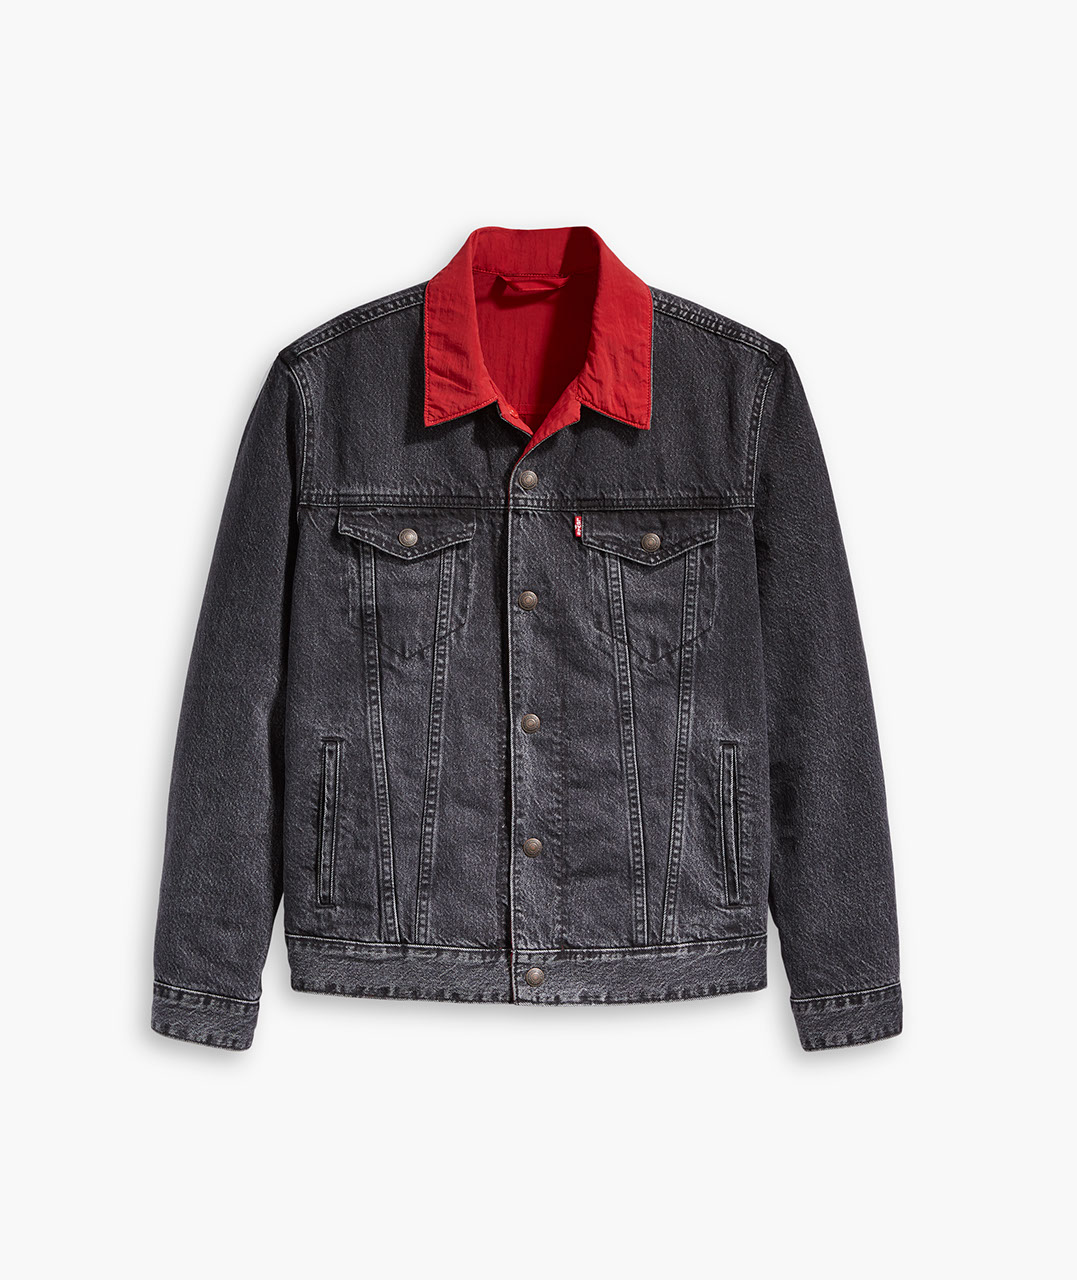 62f26e8ab59c7f The Levi s x Jordan Reversible Trucker Jacket will retail for  198 and the  Levi s x Air Jordan IV will retail for  300 in men s sizes and  230 in  youth ...